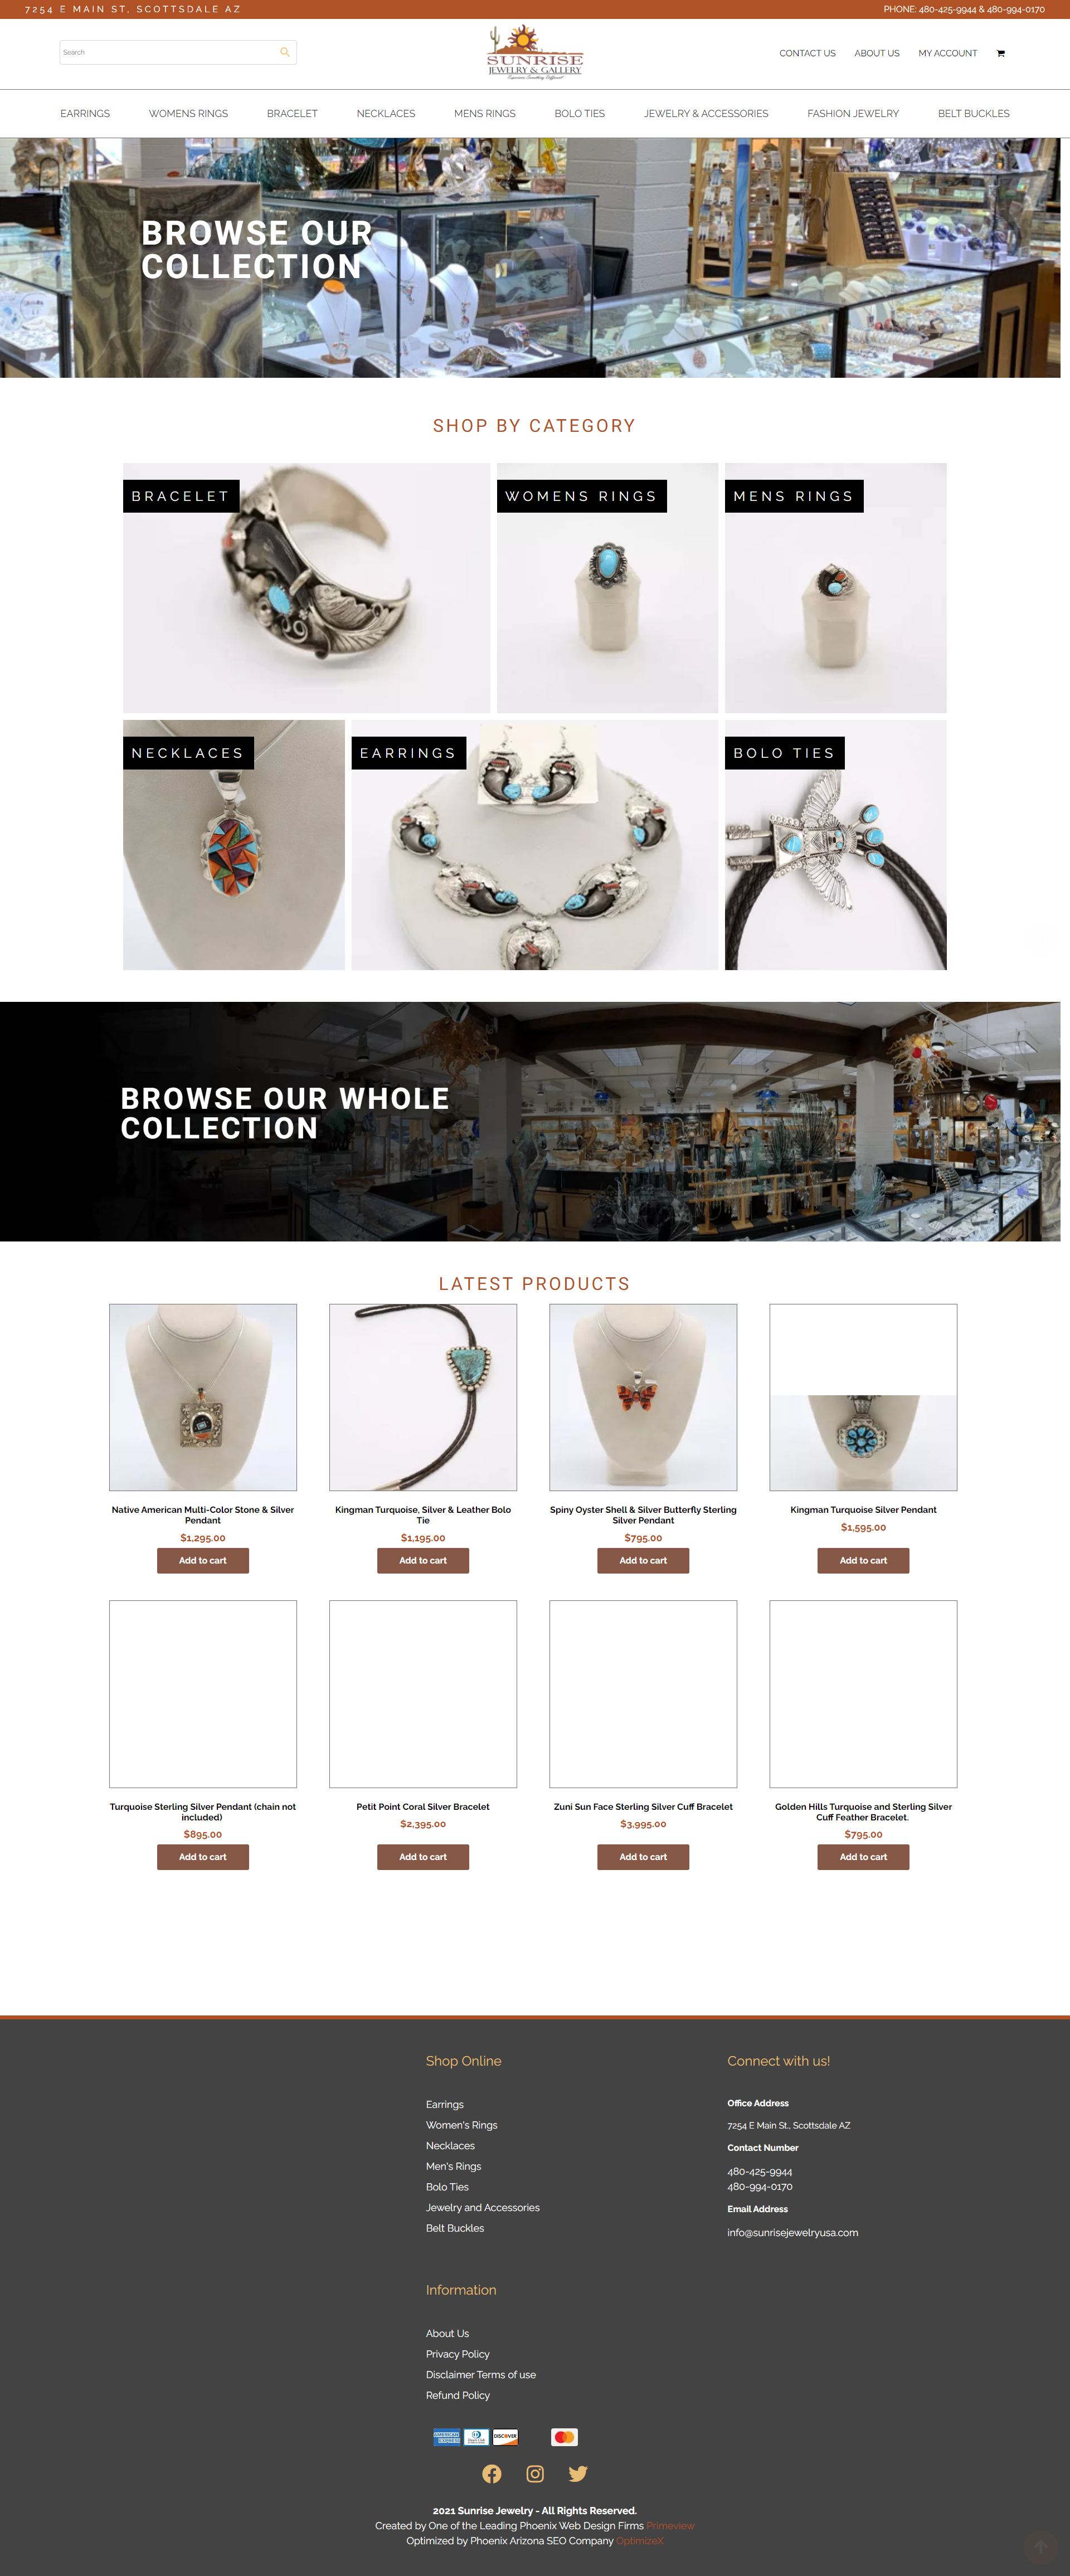 Sunrise Jewelry & Gallery Advances to Online Sales with WooCommerce